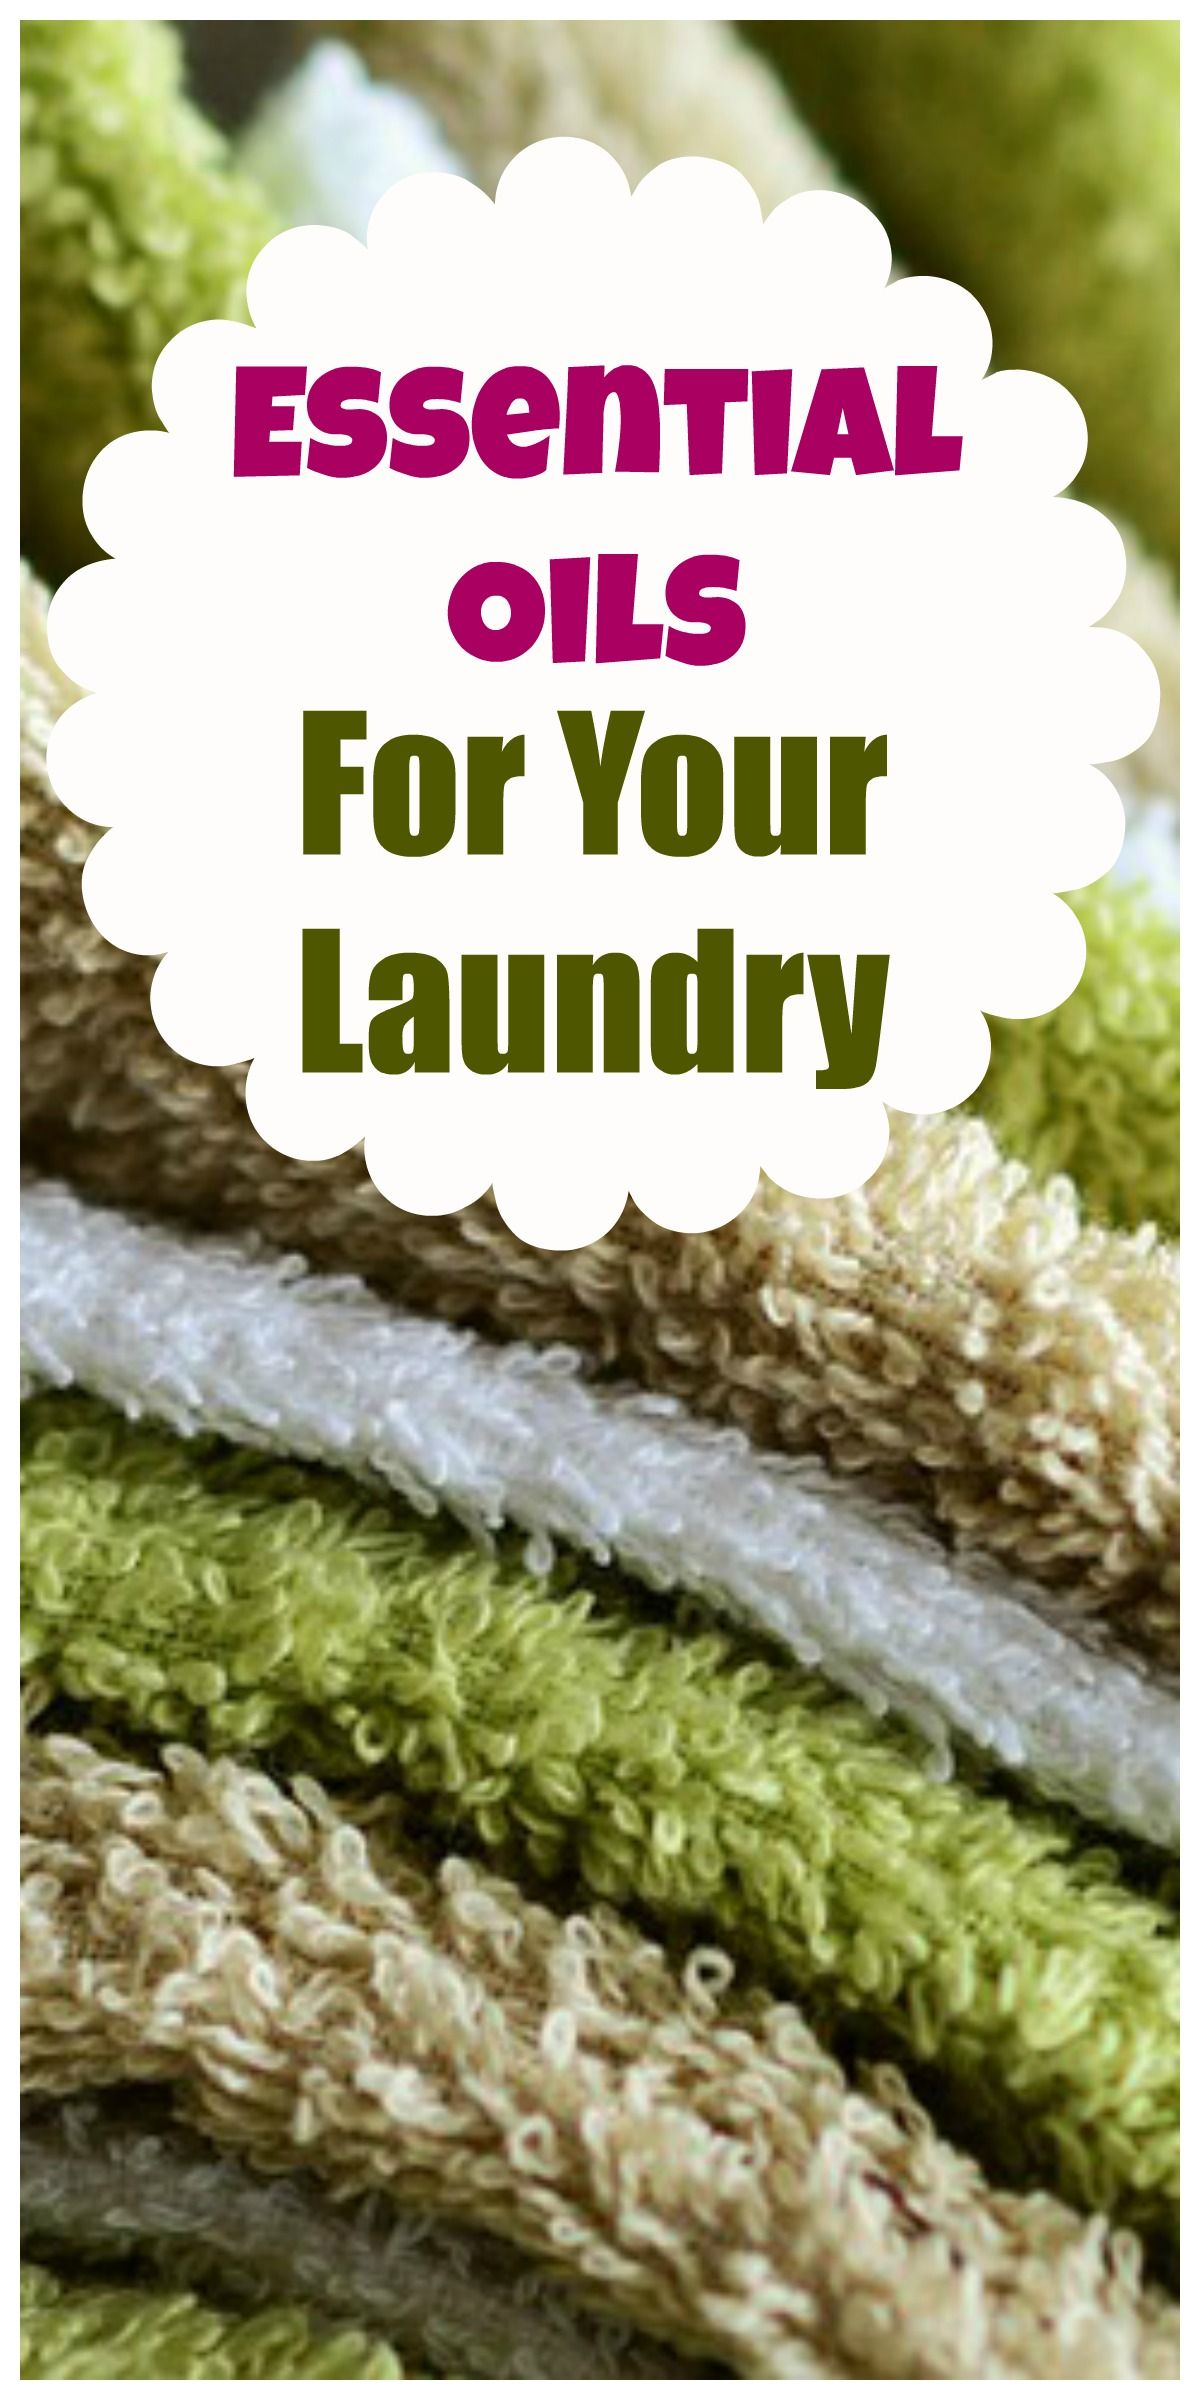 Essential Oils For Disinfecting Laundry Essential oils